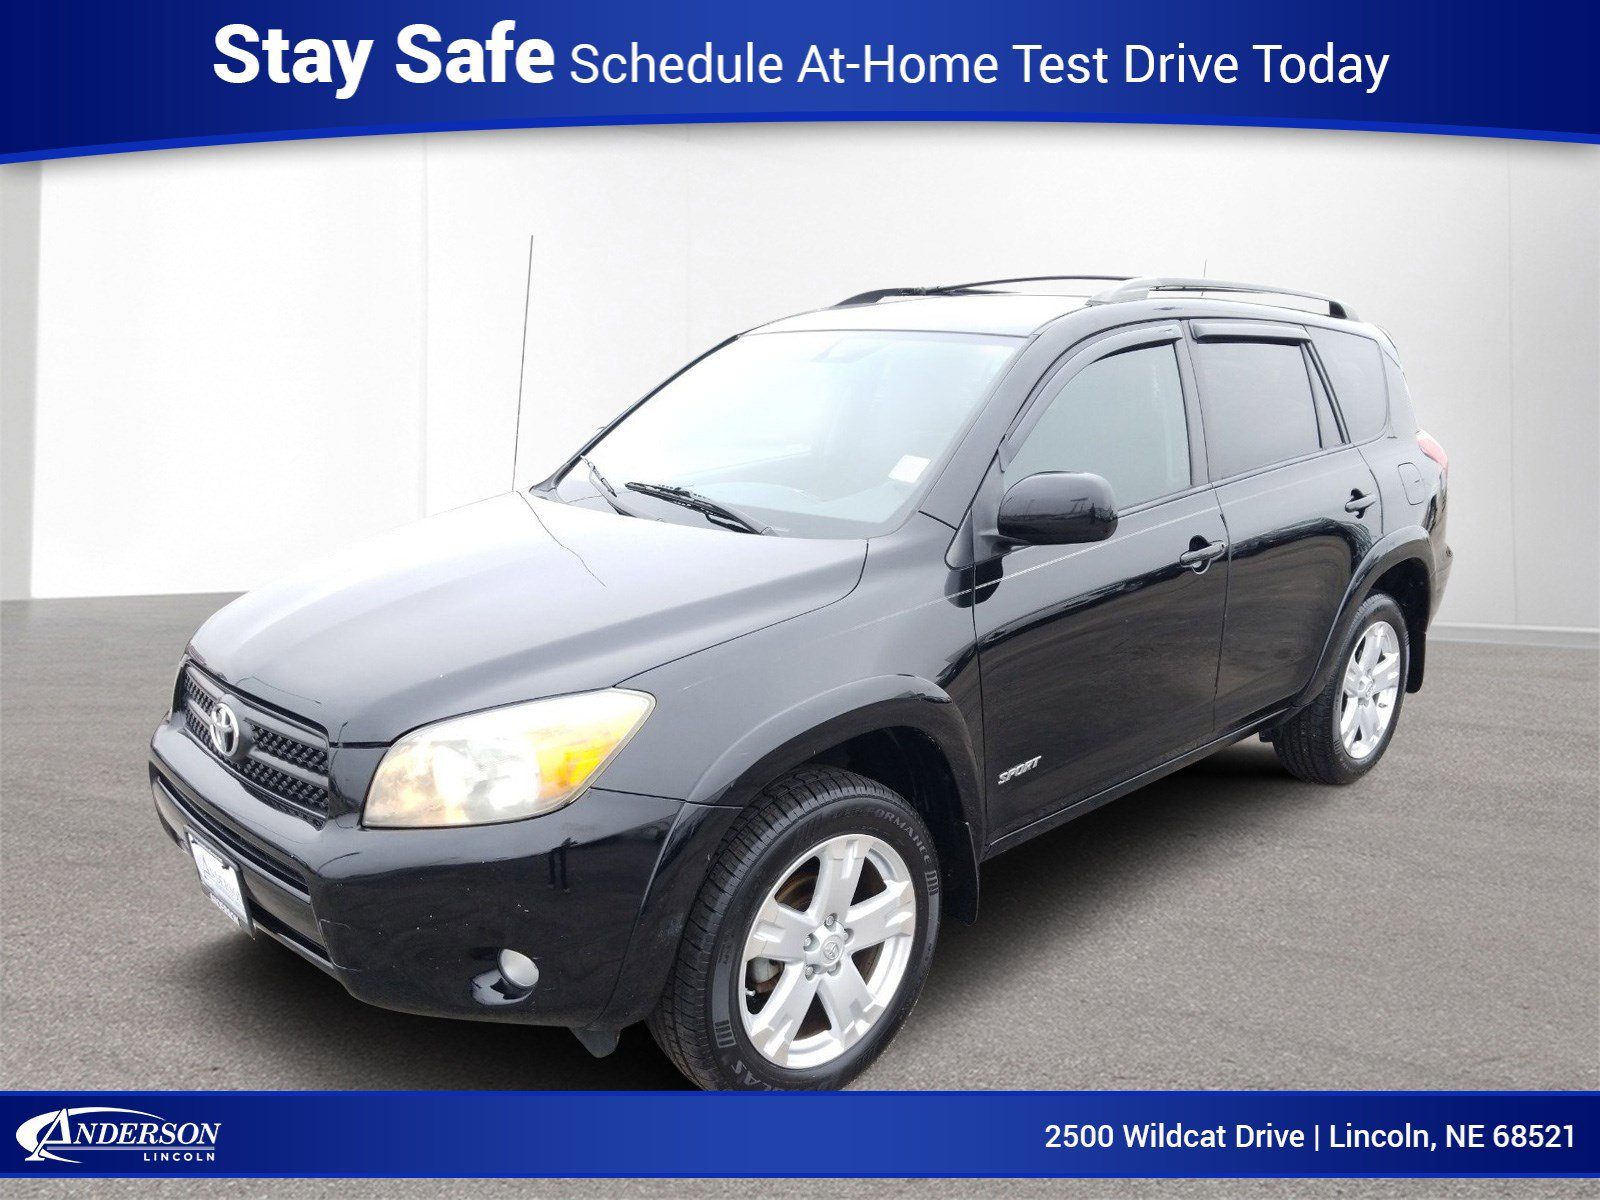 Used 2006 Toyota RAV4 Sport Sport Utility for sale in Lincoln NE